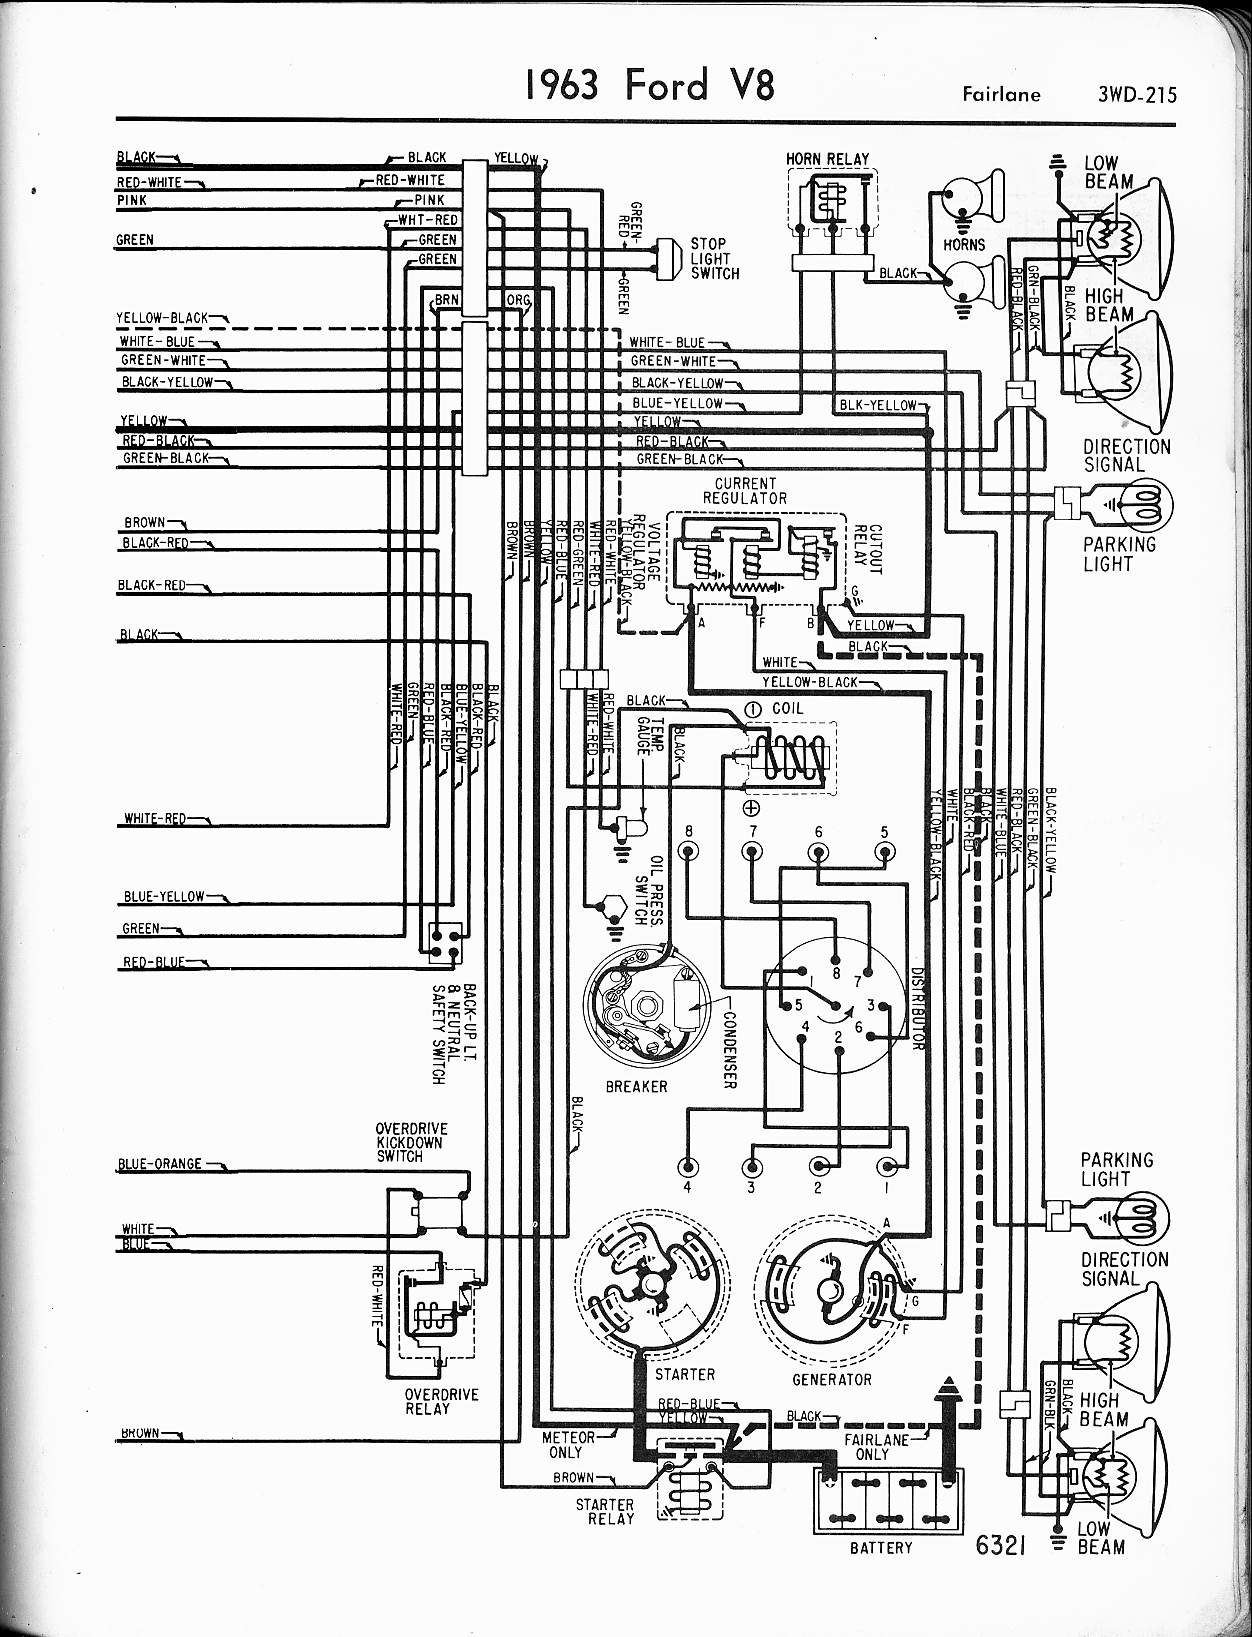 Fr Jhxkgwf U U Large further Fordwiringdiagram  et further Mwire together with D Light Switch Headlight Switch additionally Ford Galaxie Xl. on 64 falcon wiring diagram